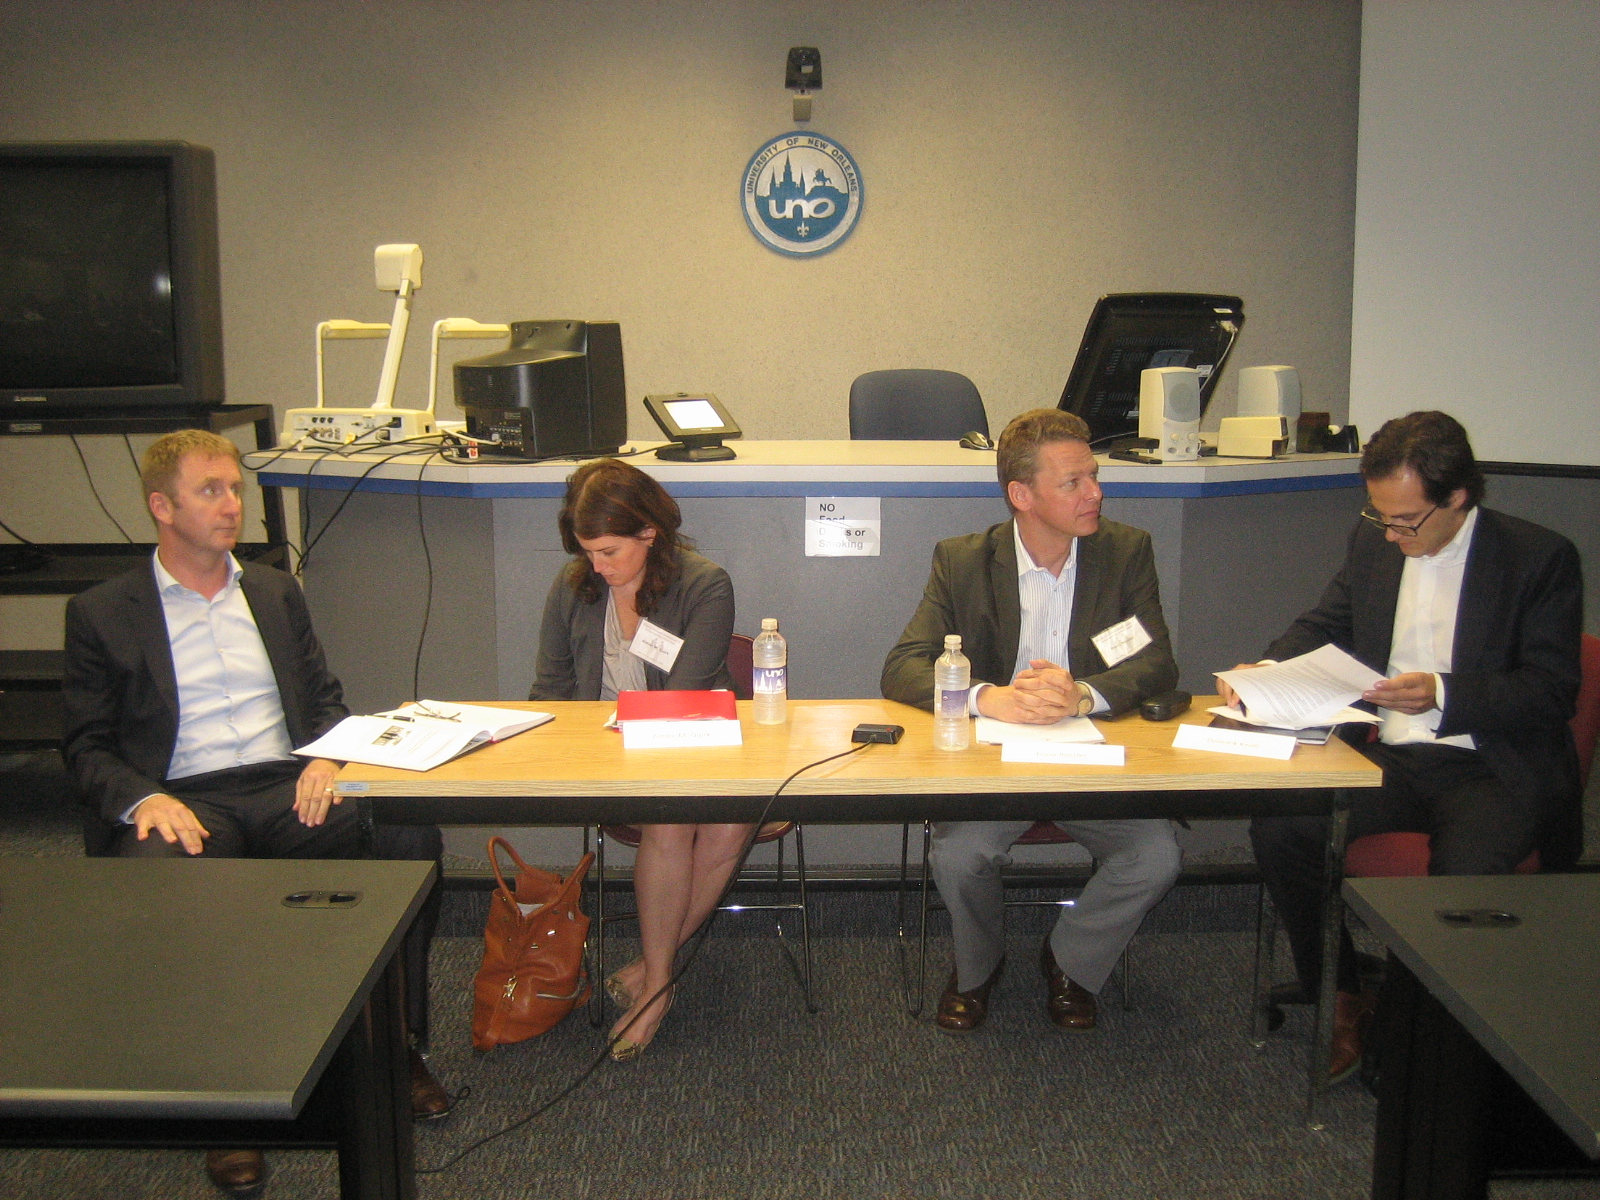 from left: Jodok Schaeffer; Aimee Quirck; Franz Roessler; Dominik Knoll, CEO, World Trade Center, New Orleans